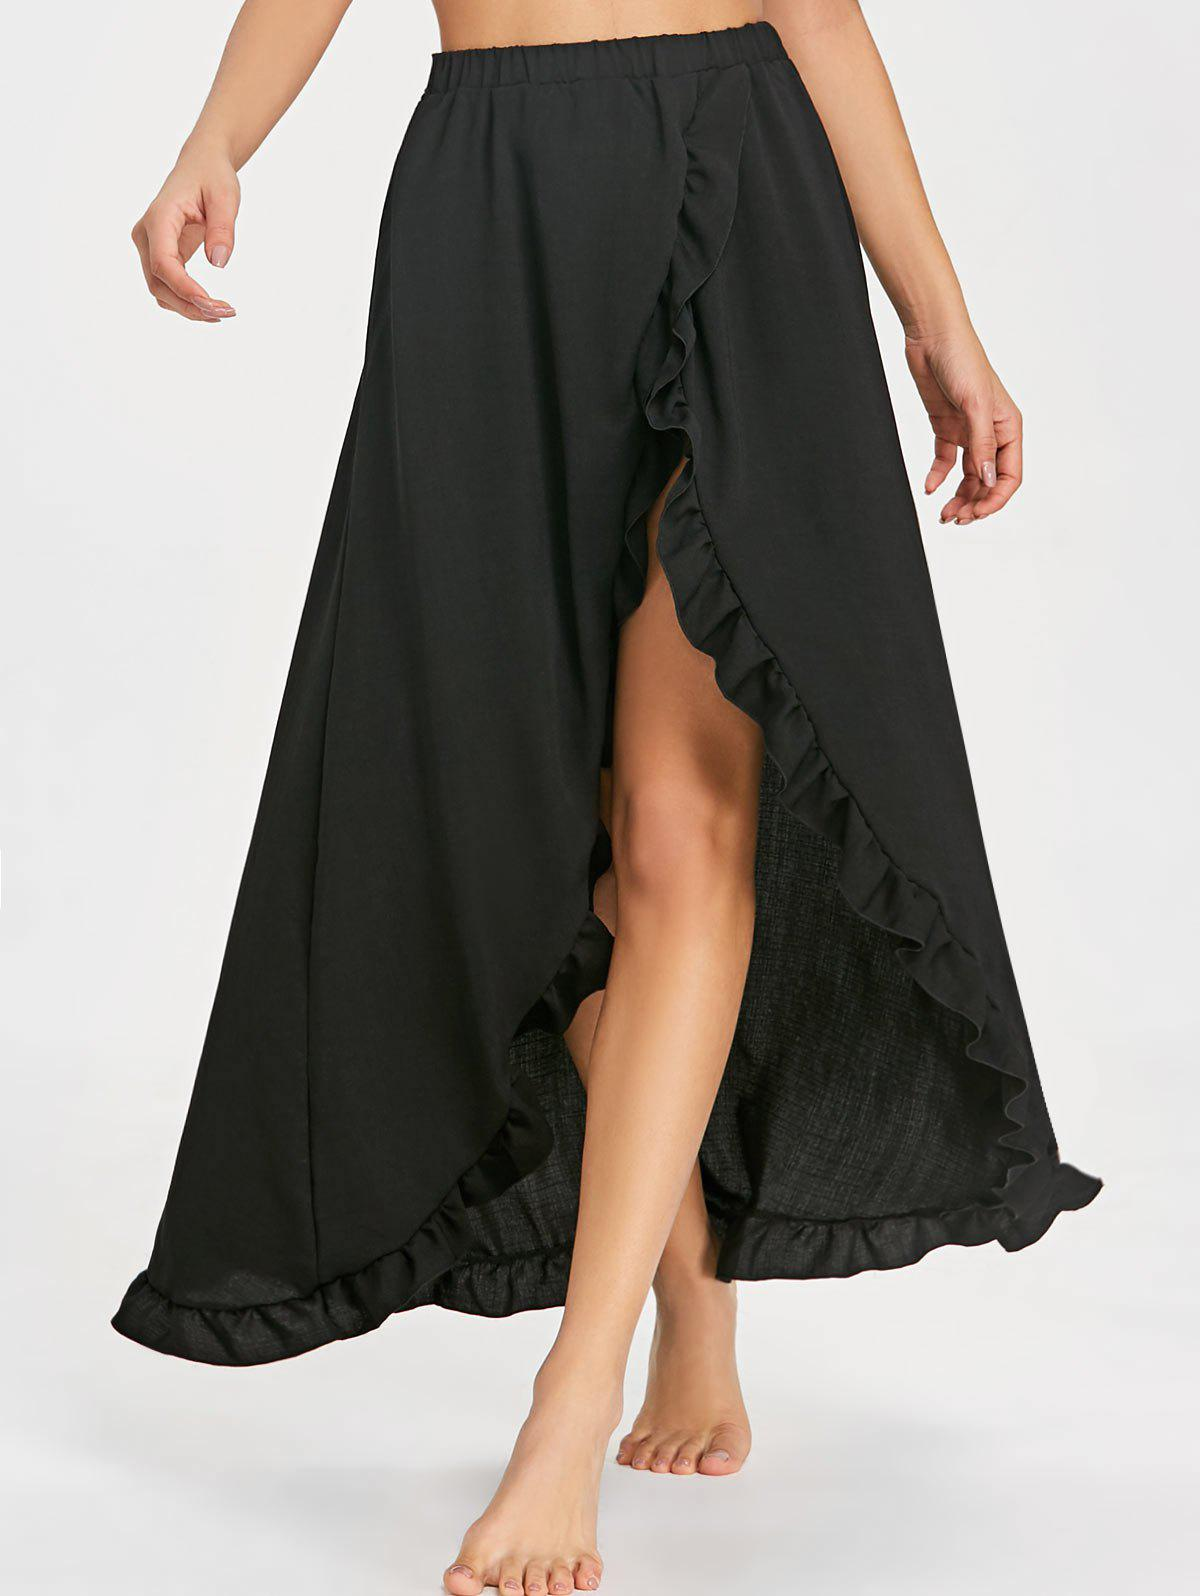 Chic Ruffle Floor Length Tulip Skirt